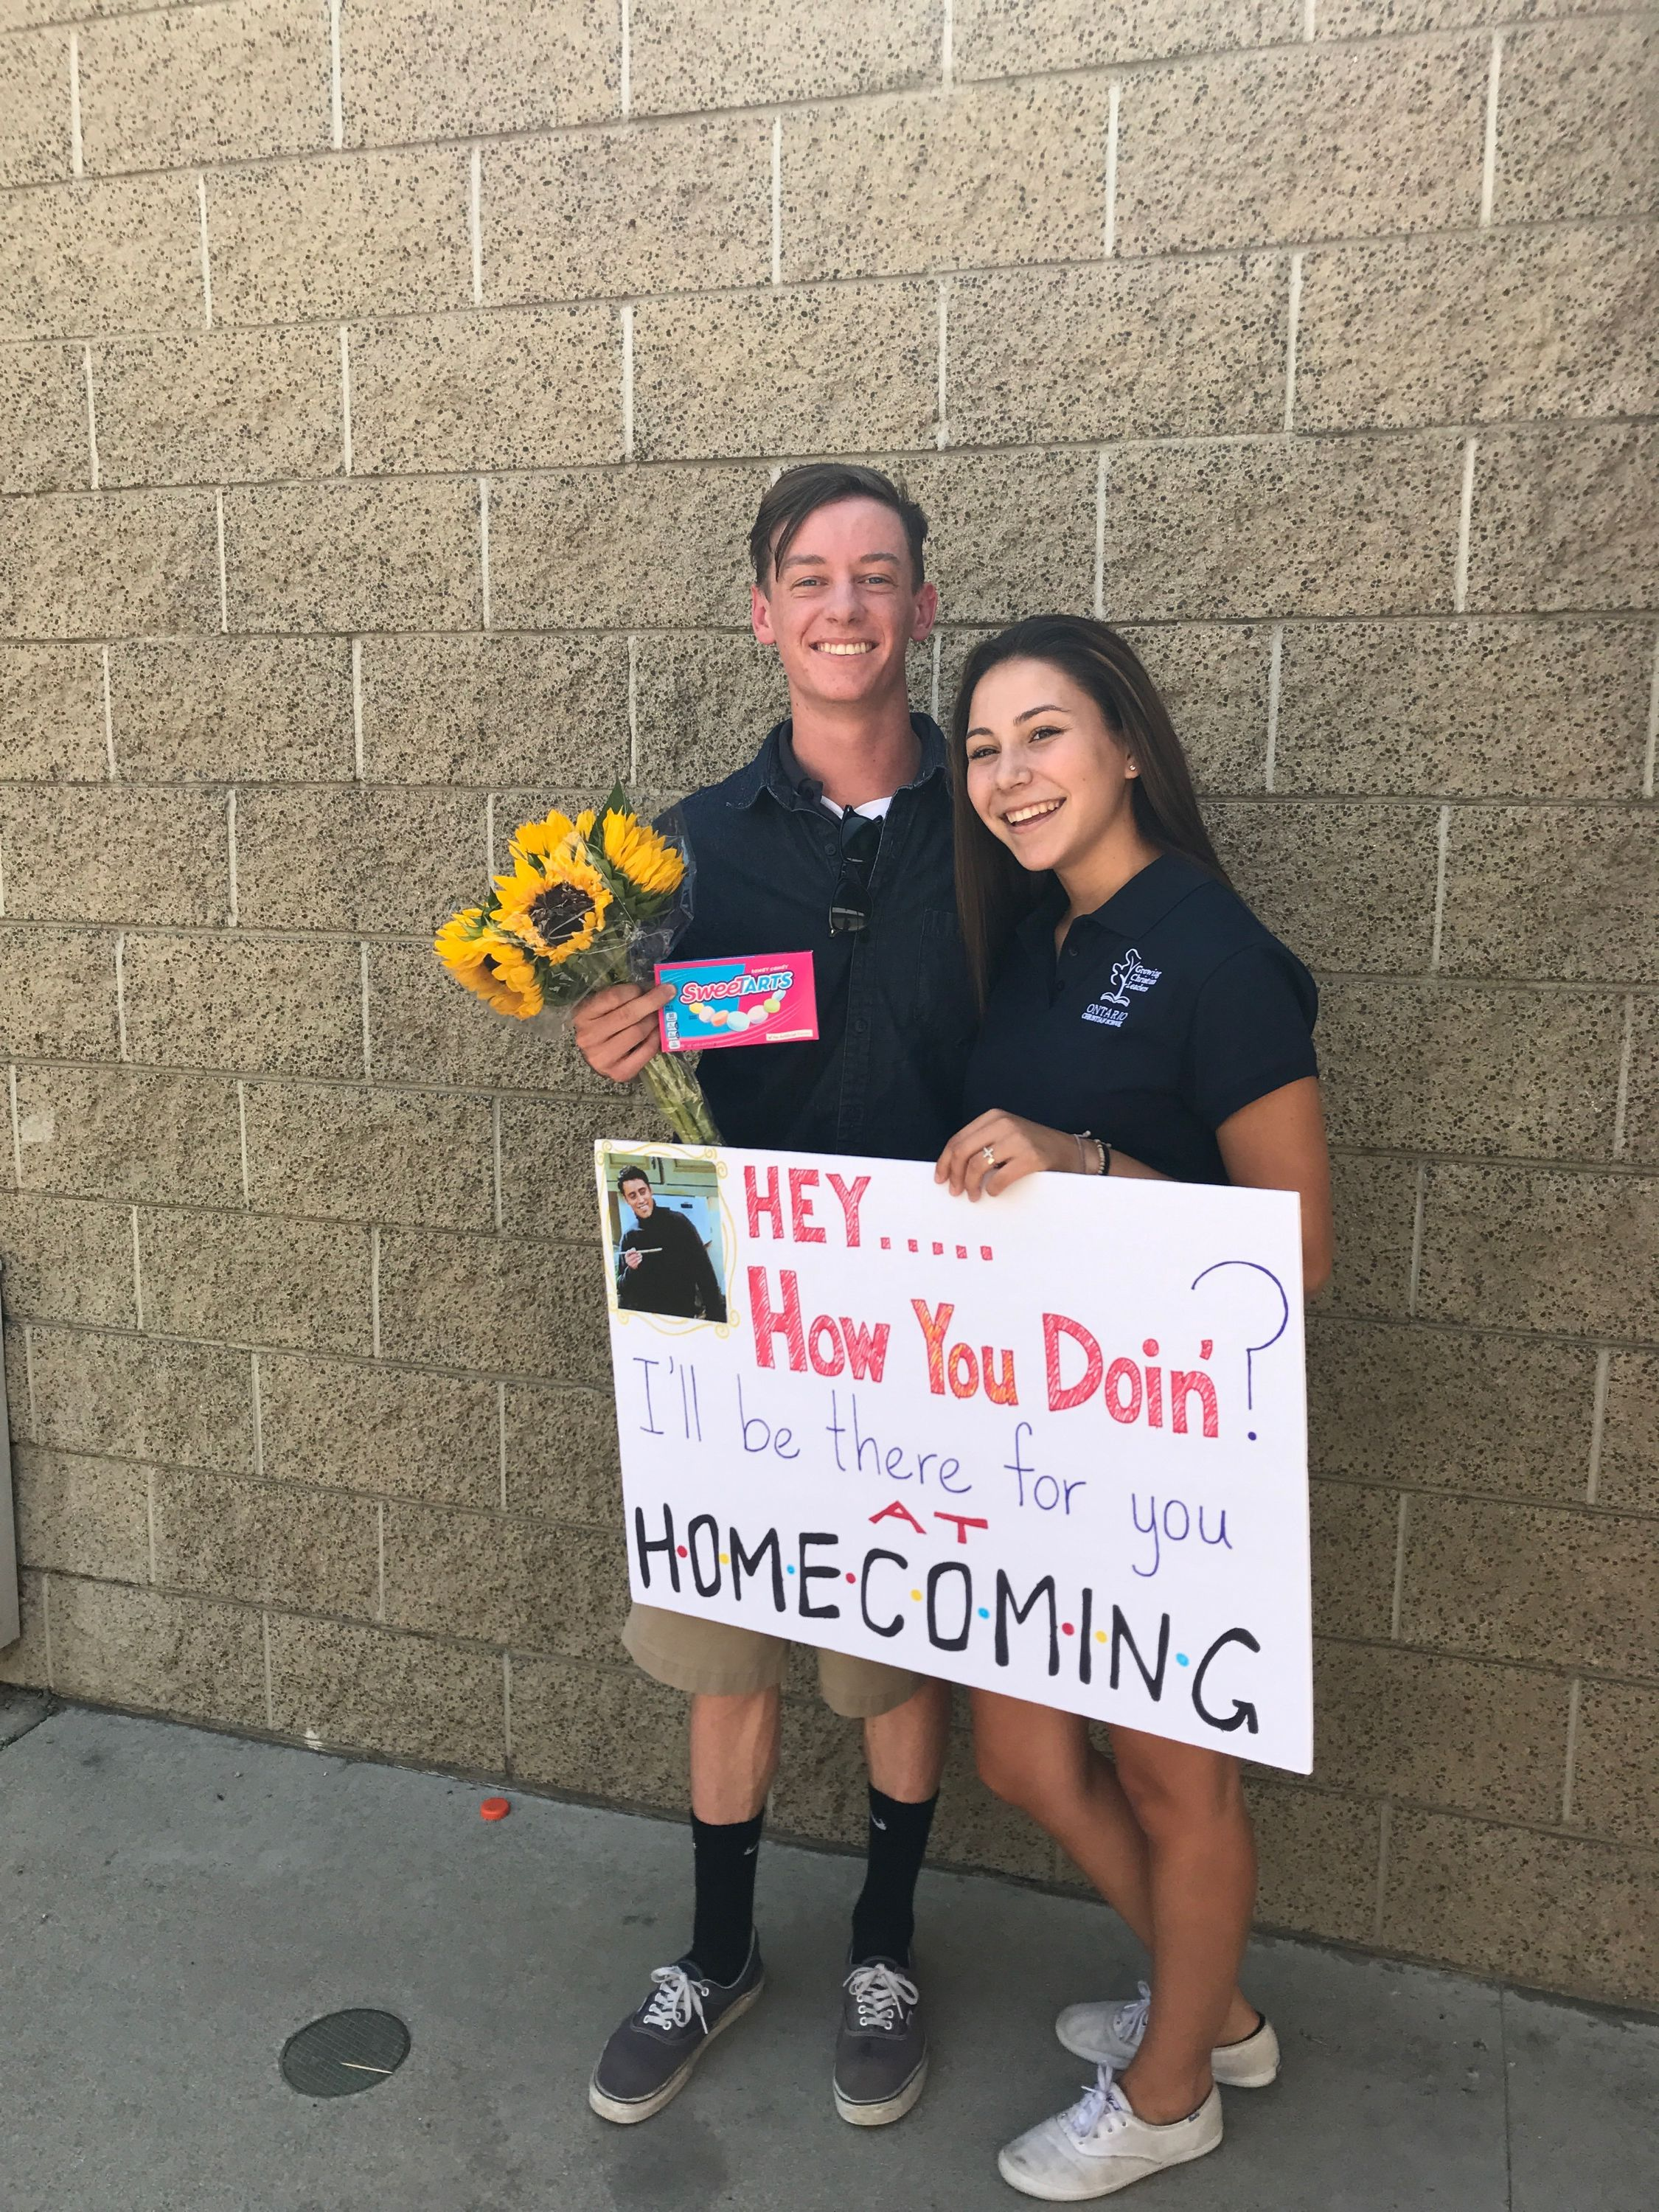 Pin By Shannon Cost On Promposals Cute Homecoming Proposals Cute Prom Proposals Homecoming Proposal